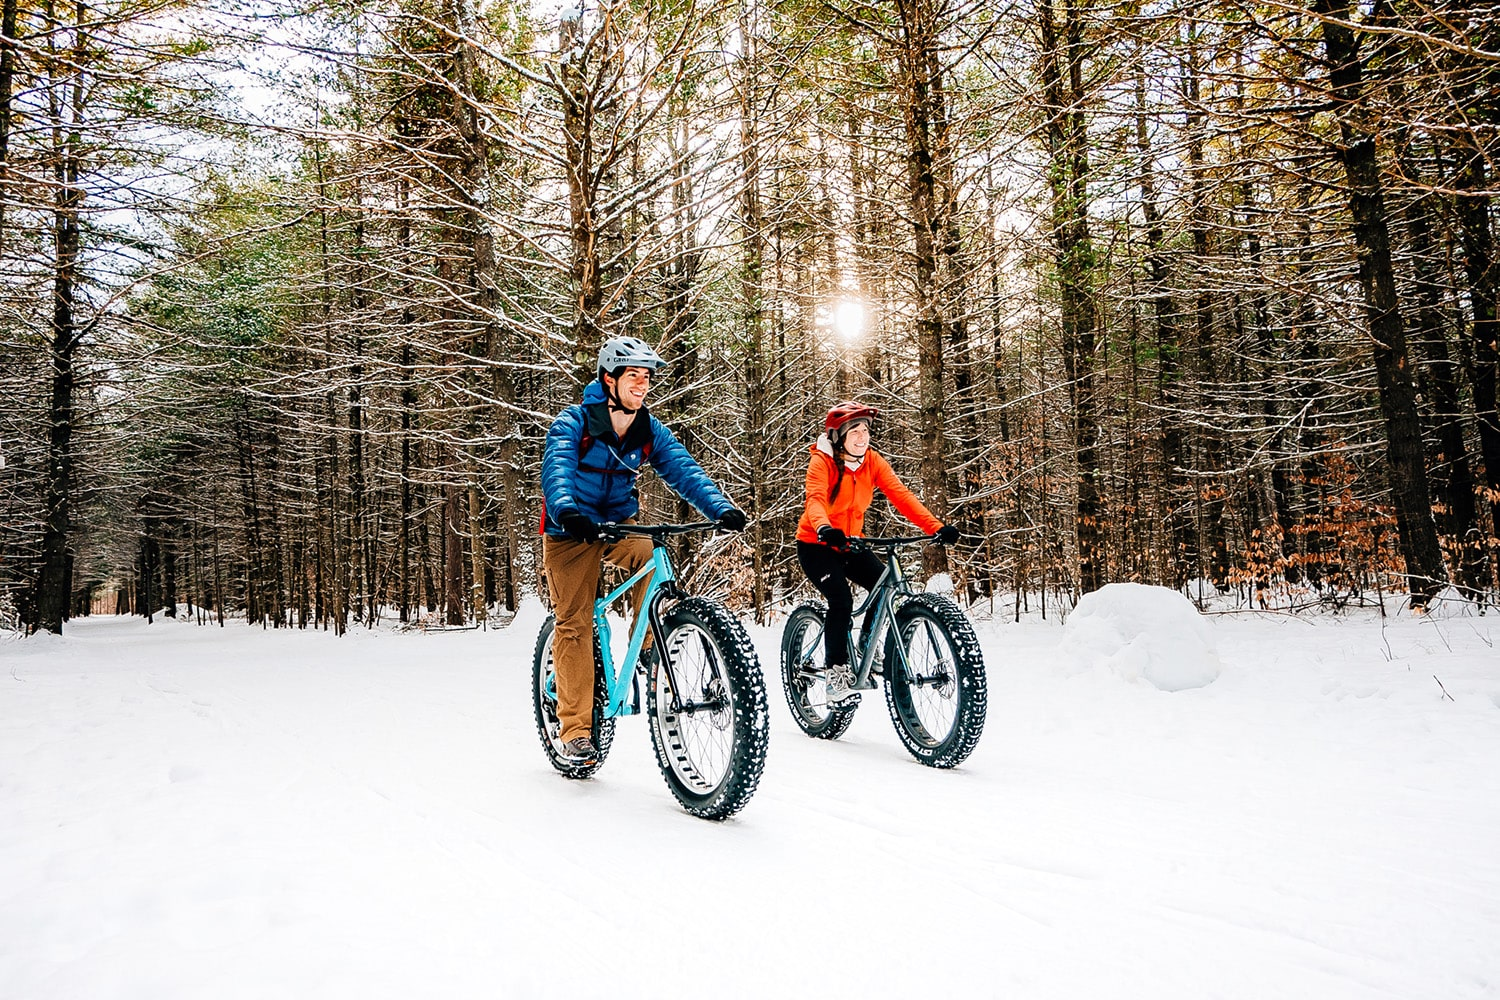 A couple on fat bikes in the snow